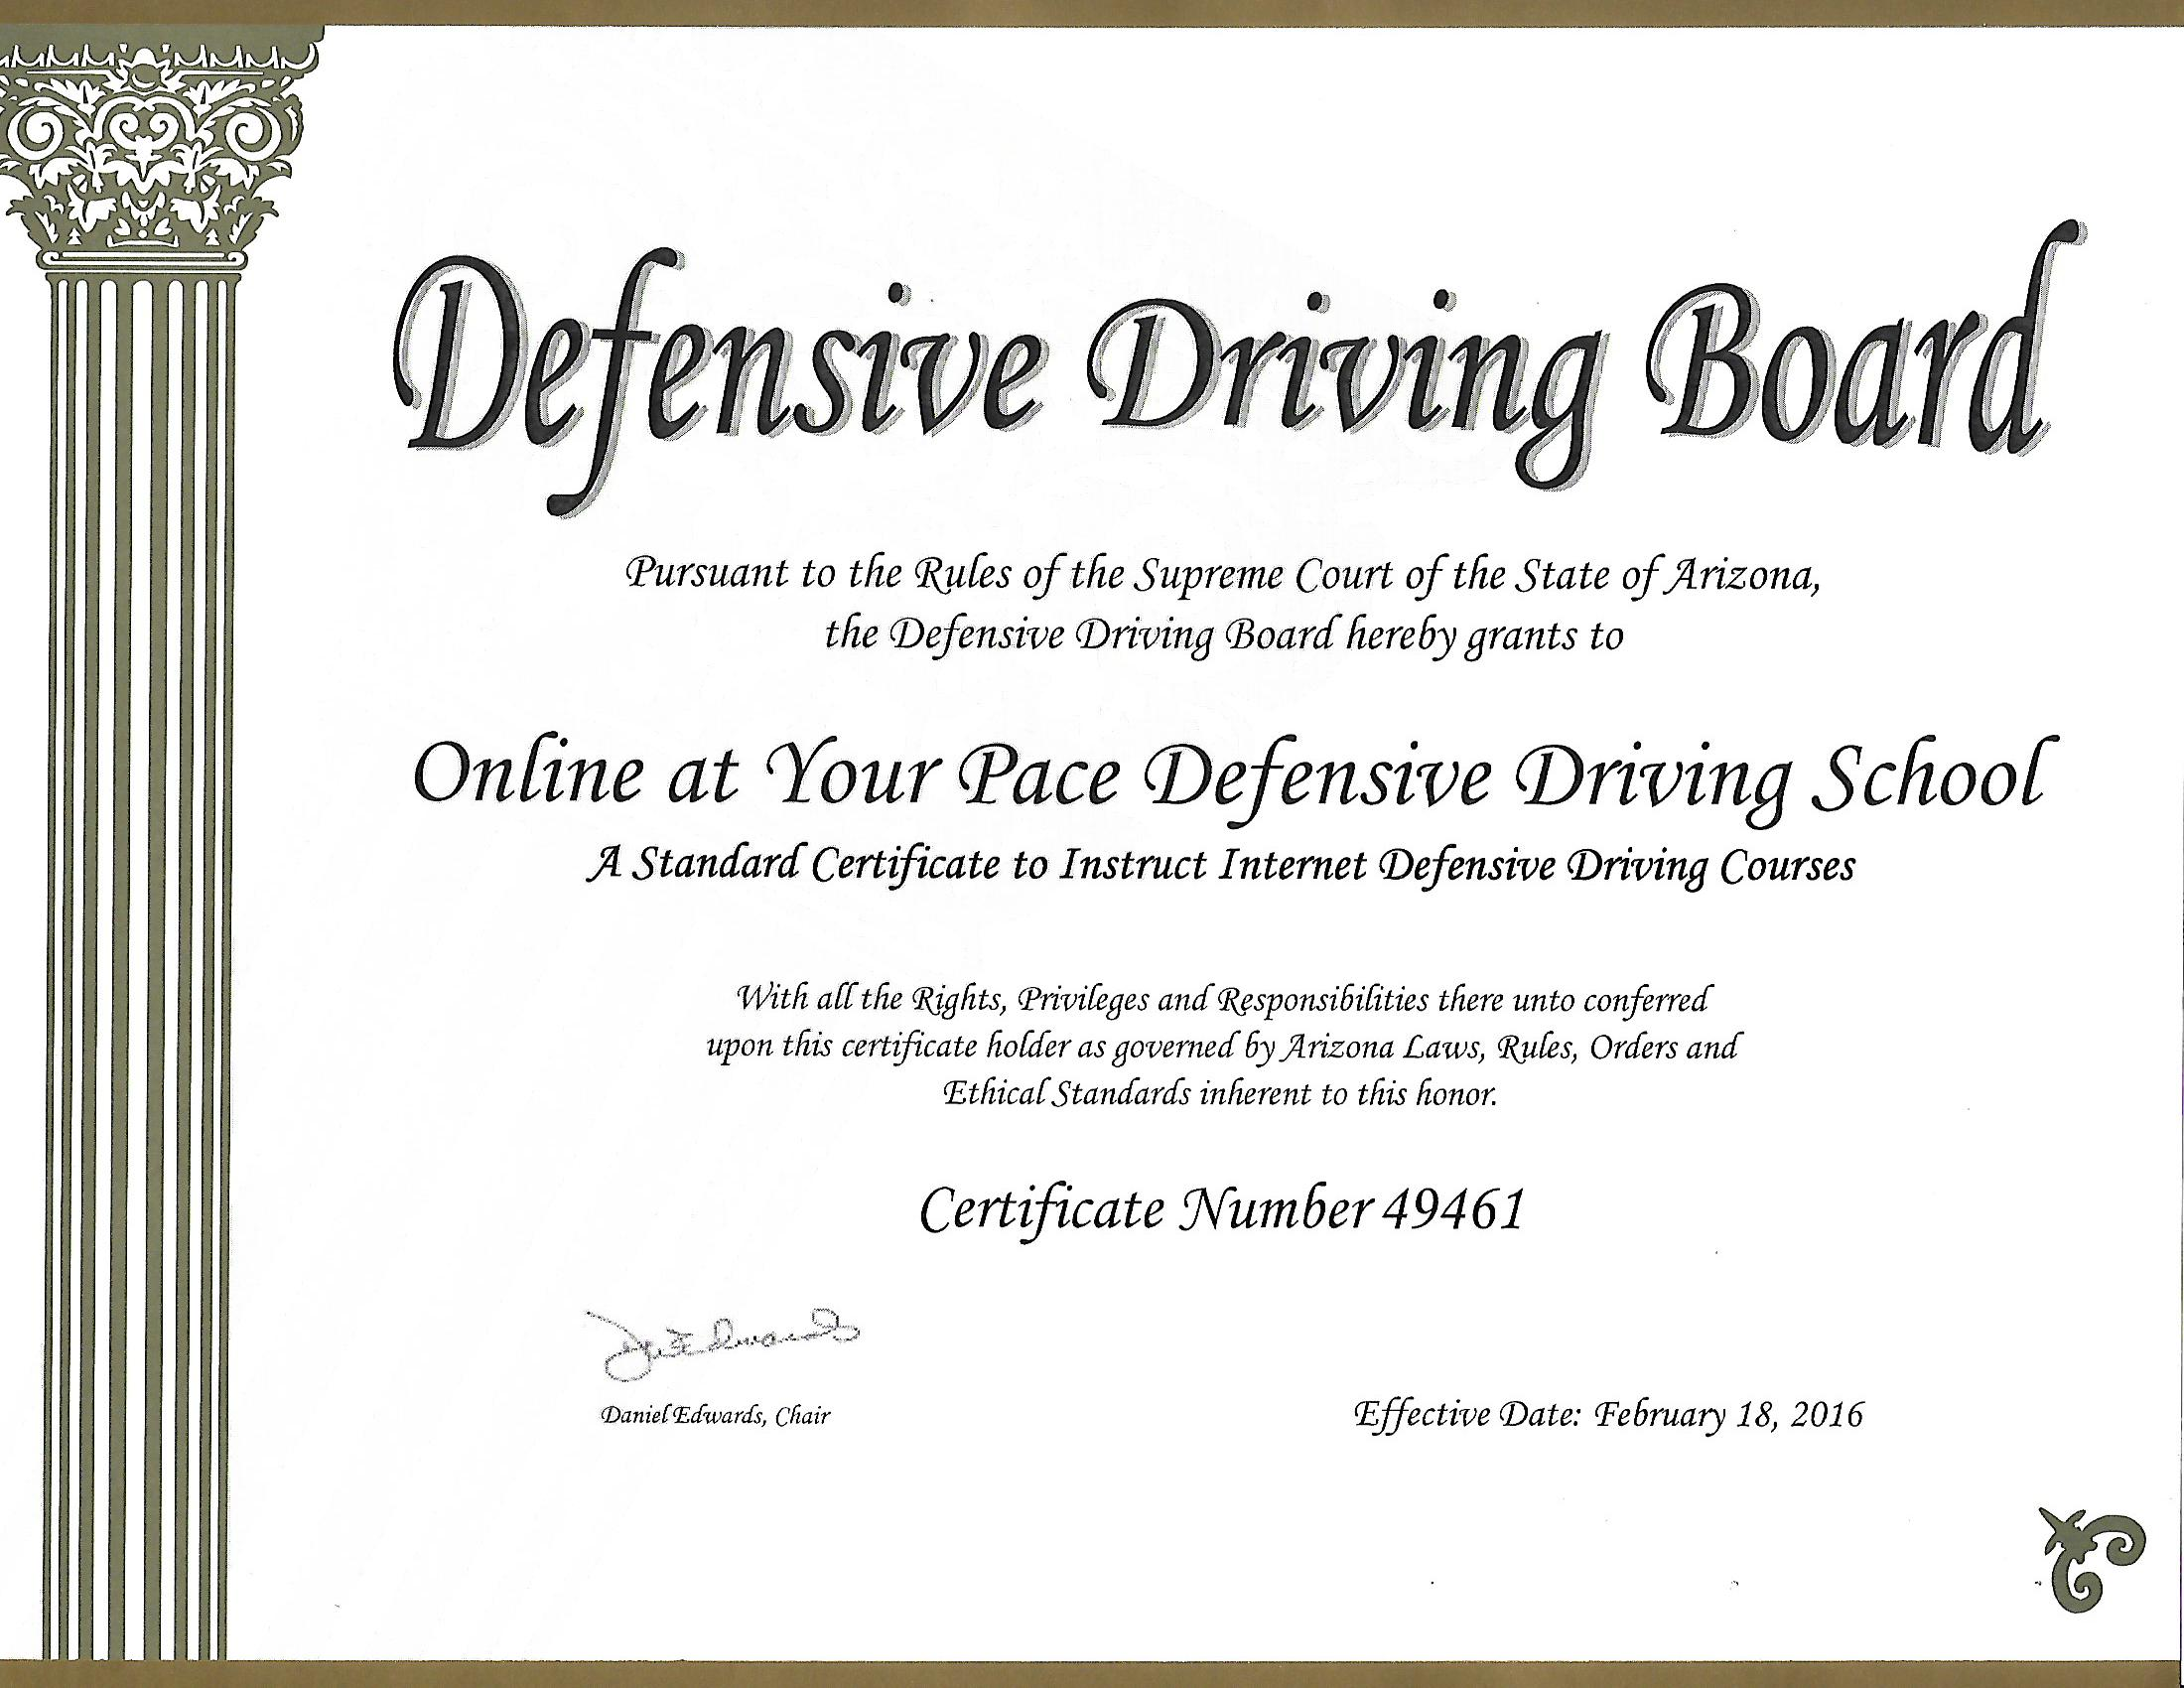 Onlineatyourpacedefensivedriving Take Defensive Driving Online